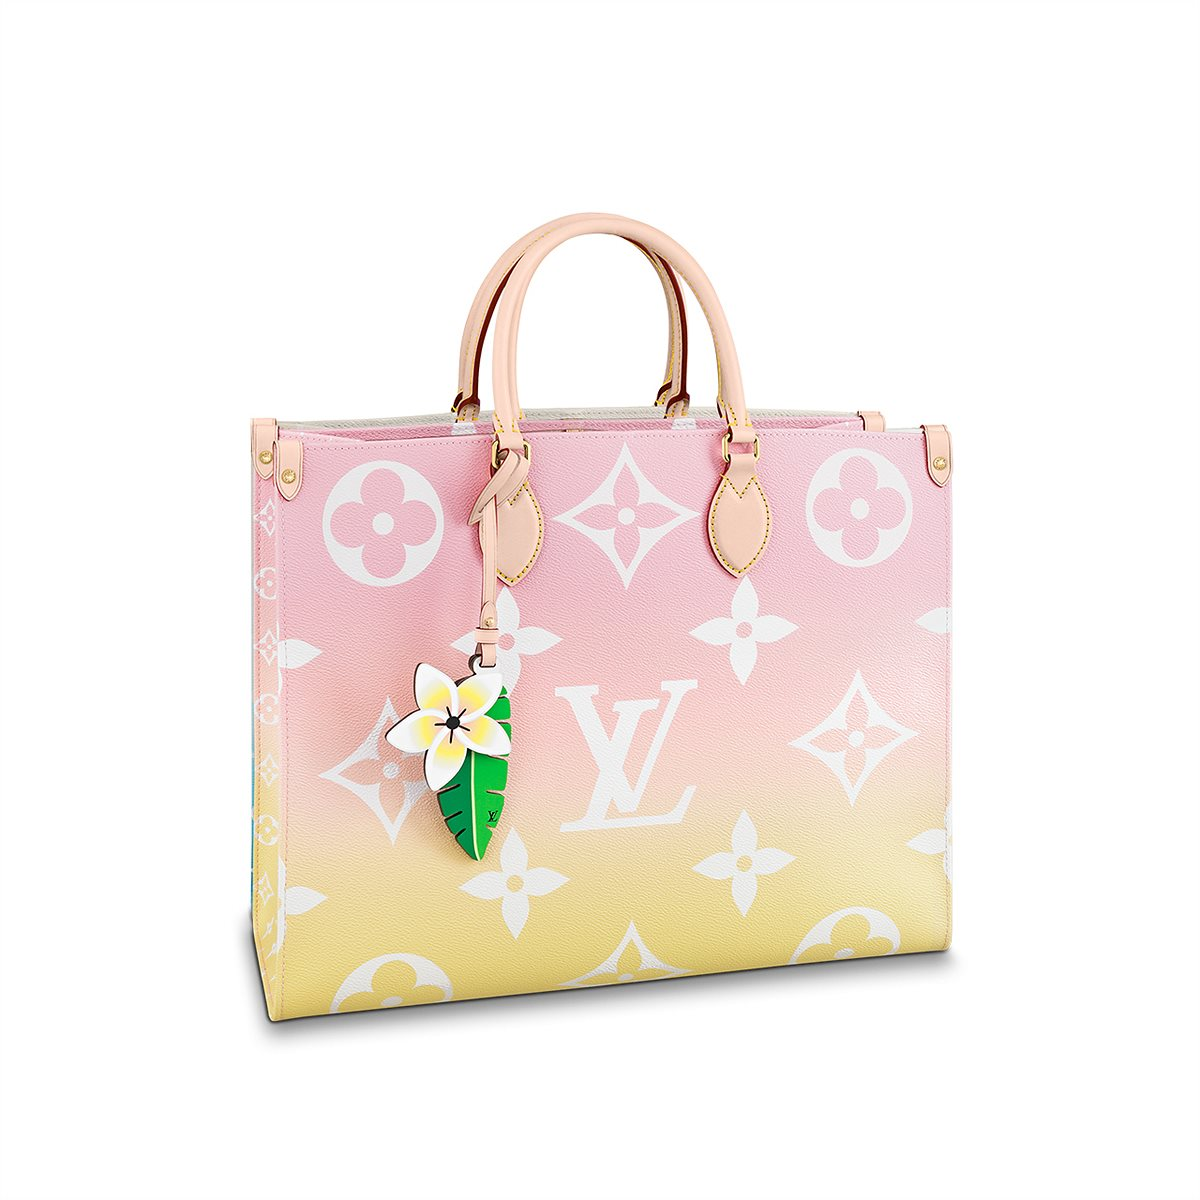 LV_Summer Capsule Collection 2021_On the go